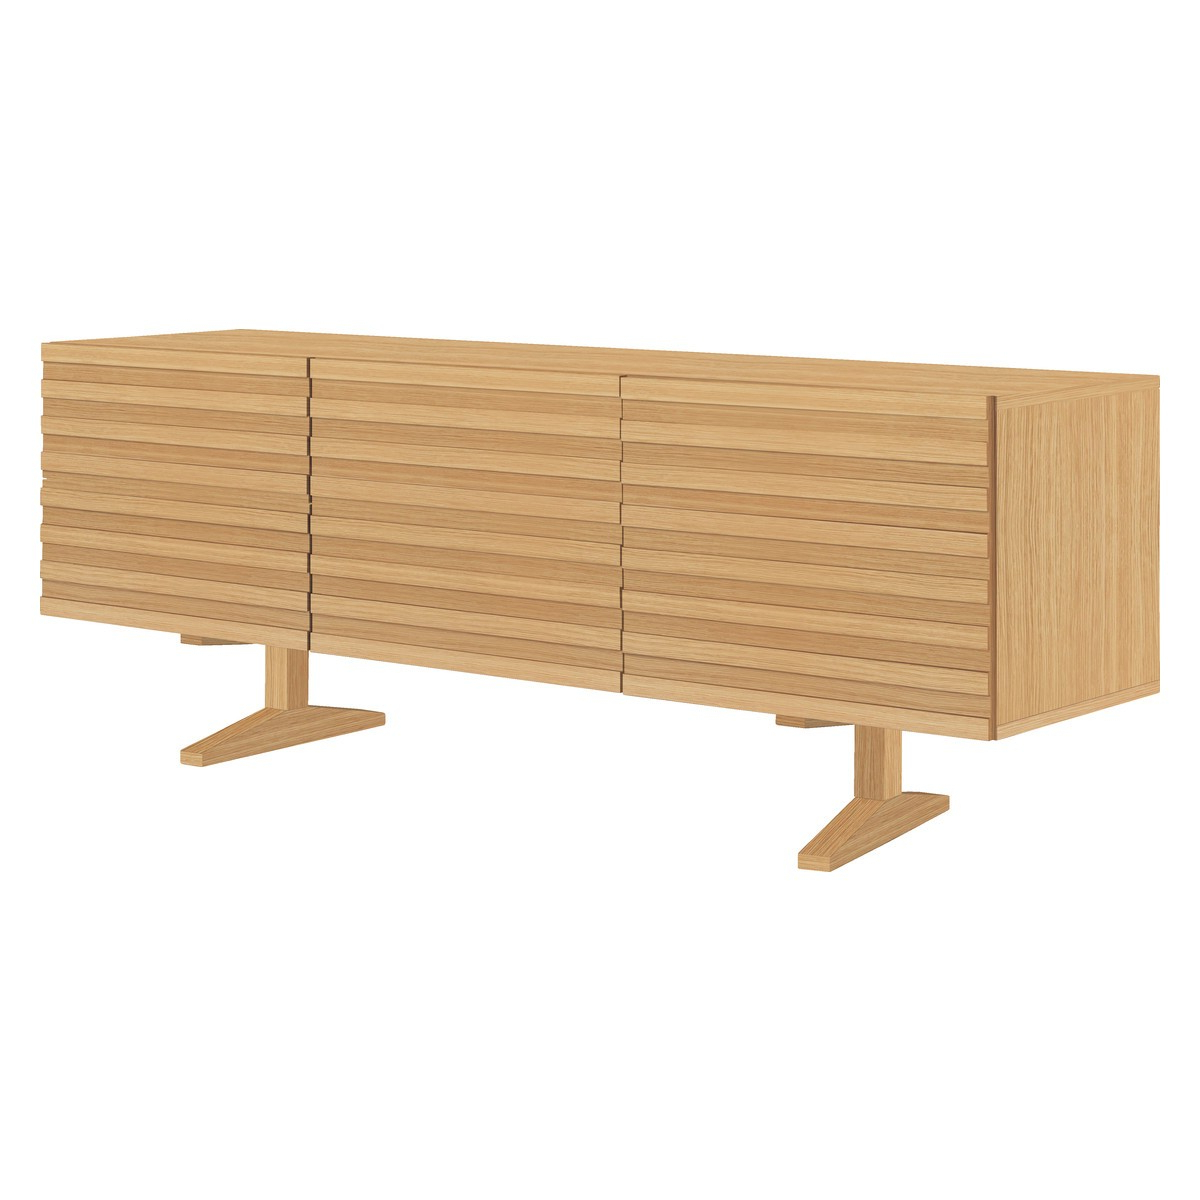 Buy Now At Habitat Uk Within Latest Antique Walnut Finish 2 Door/4 Drawer Sideboards (View 20 of 20)